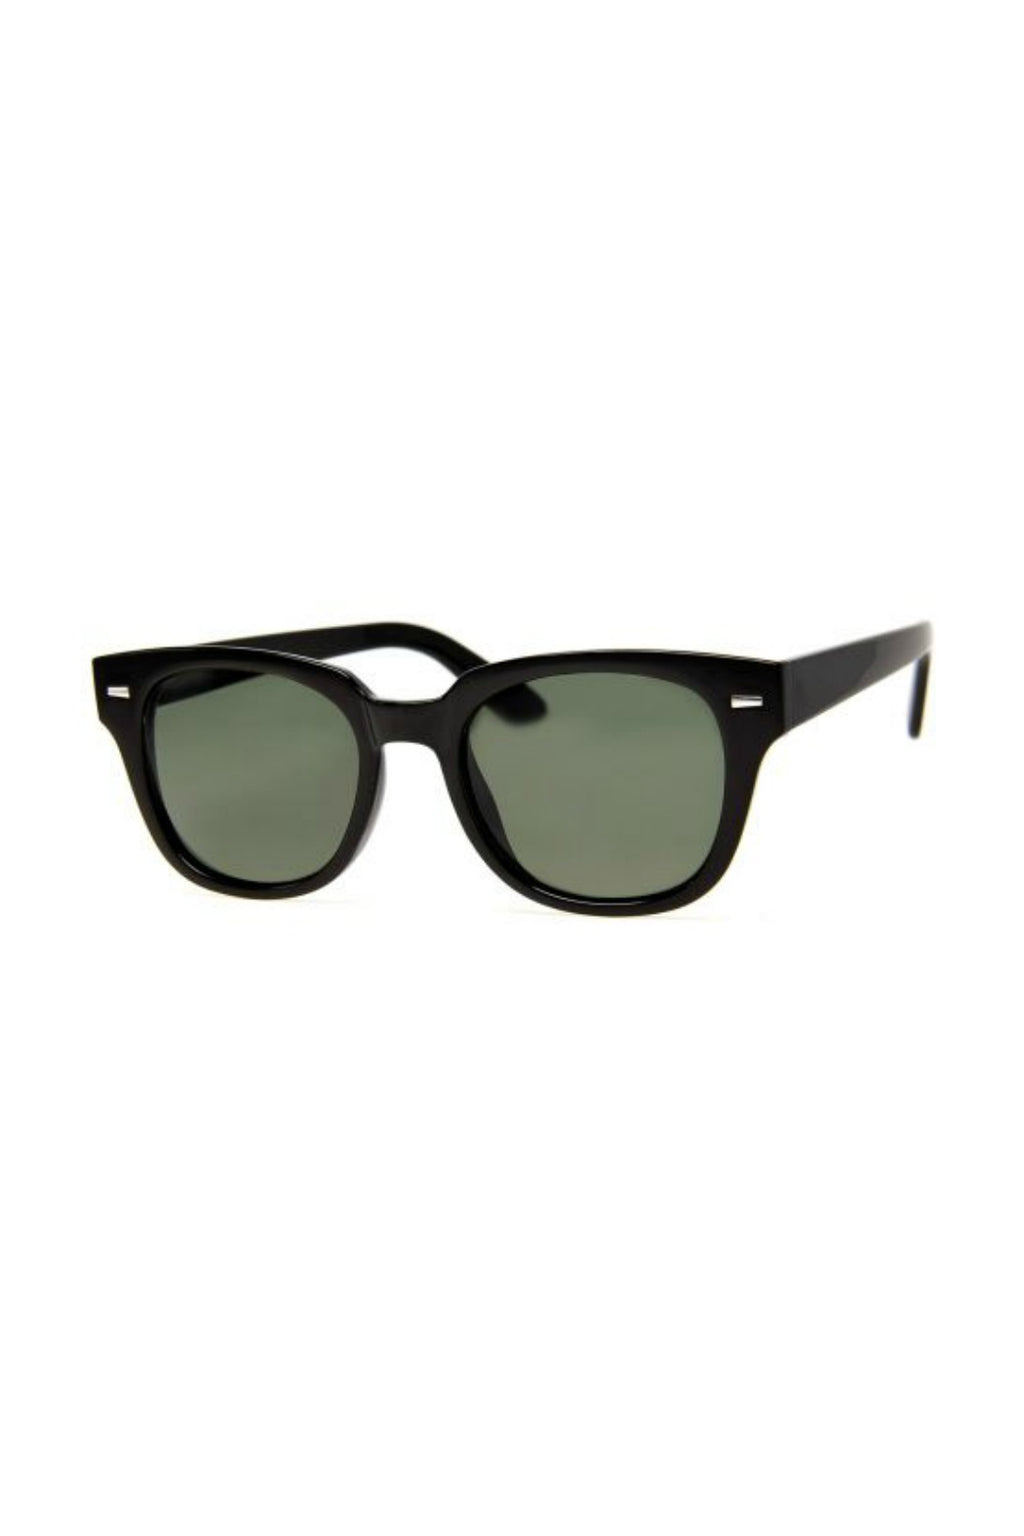 Tono Sama Sunnies - Black